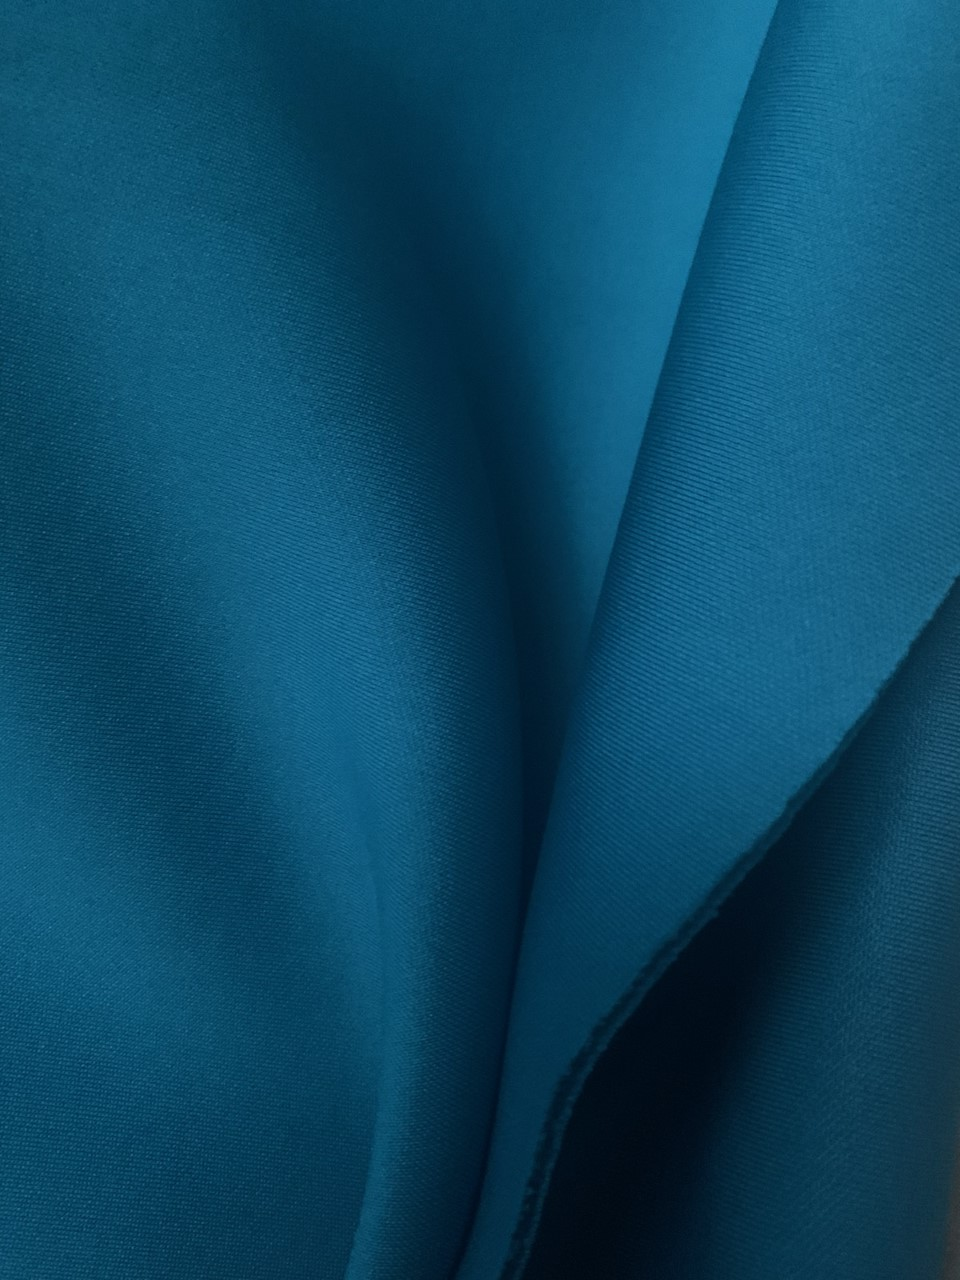 "58/60"" Turquoise Neoprene Scuba Fabric BTY 90% Poly 10% Spandex"